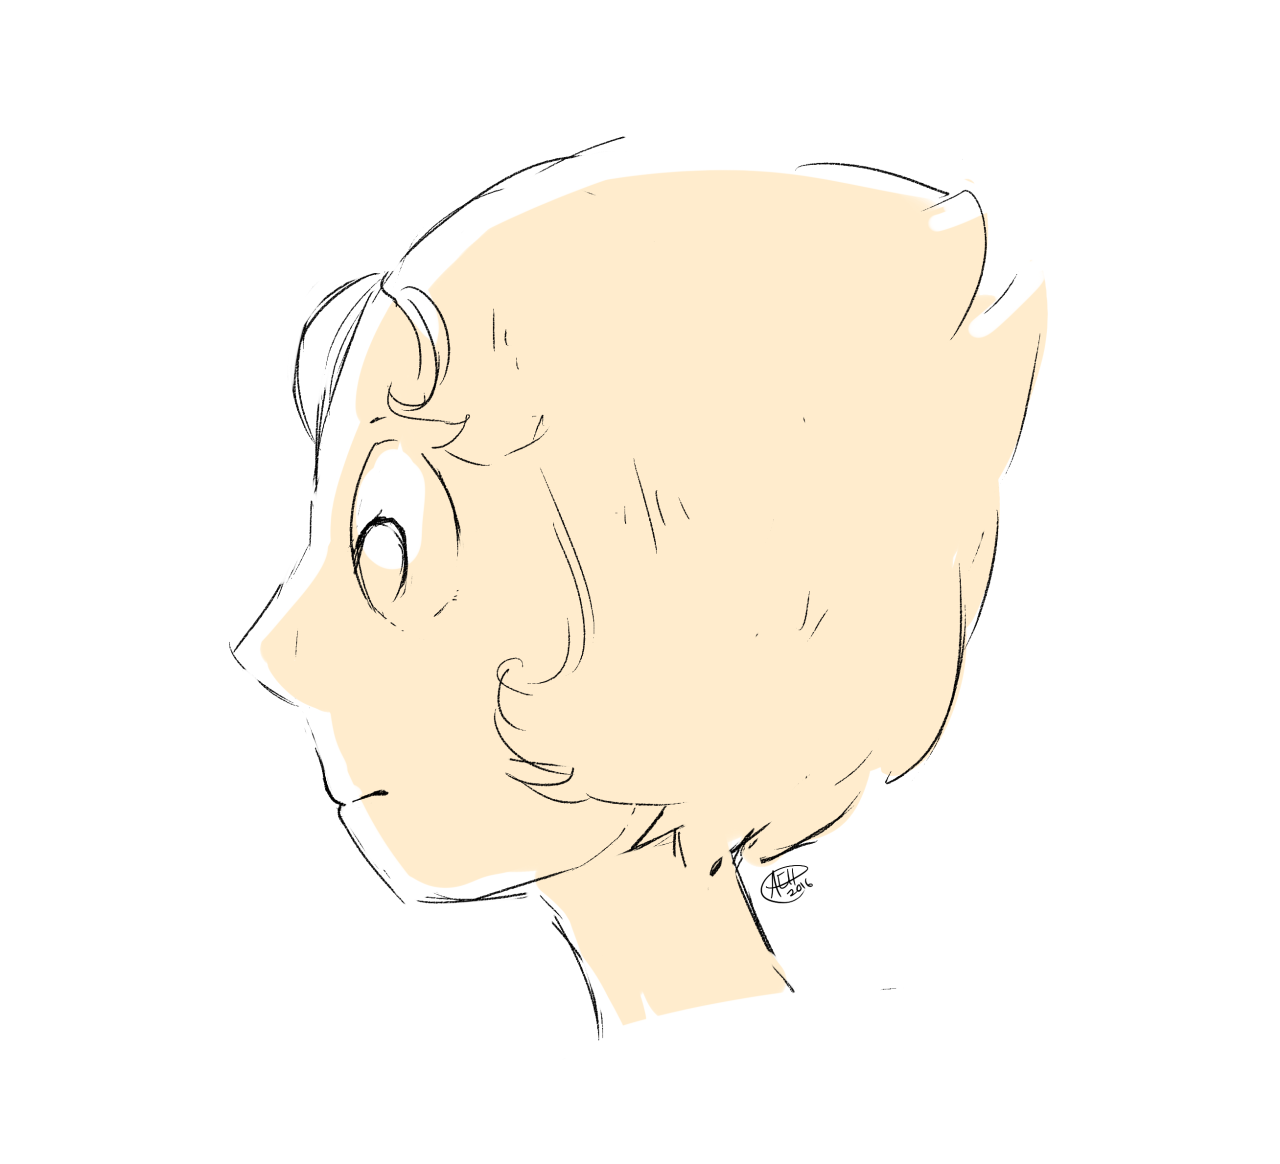 i havent watched steven universe in weeks